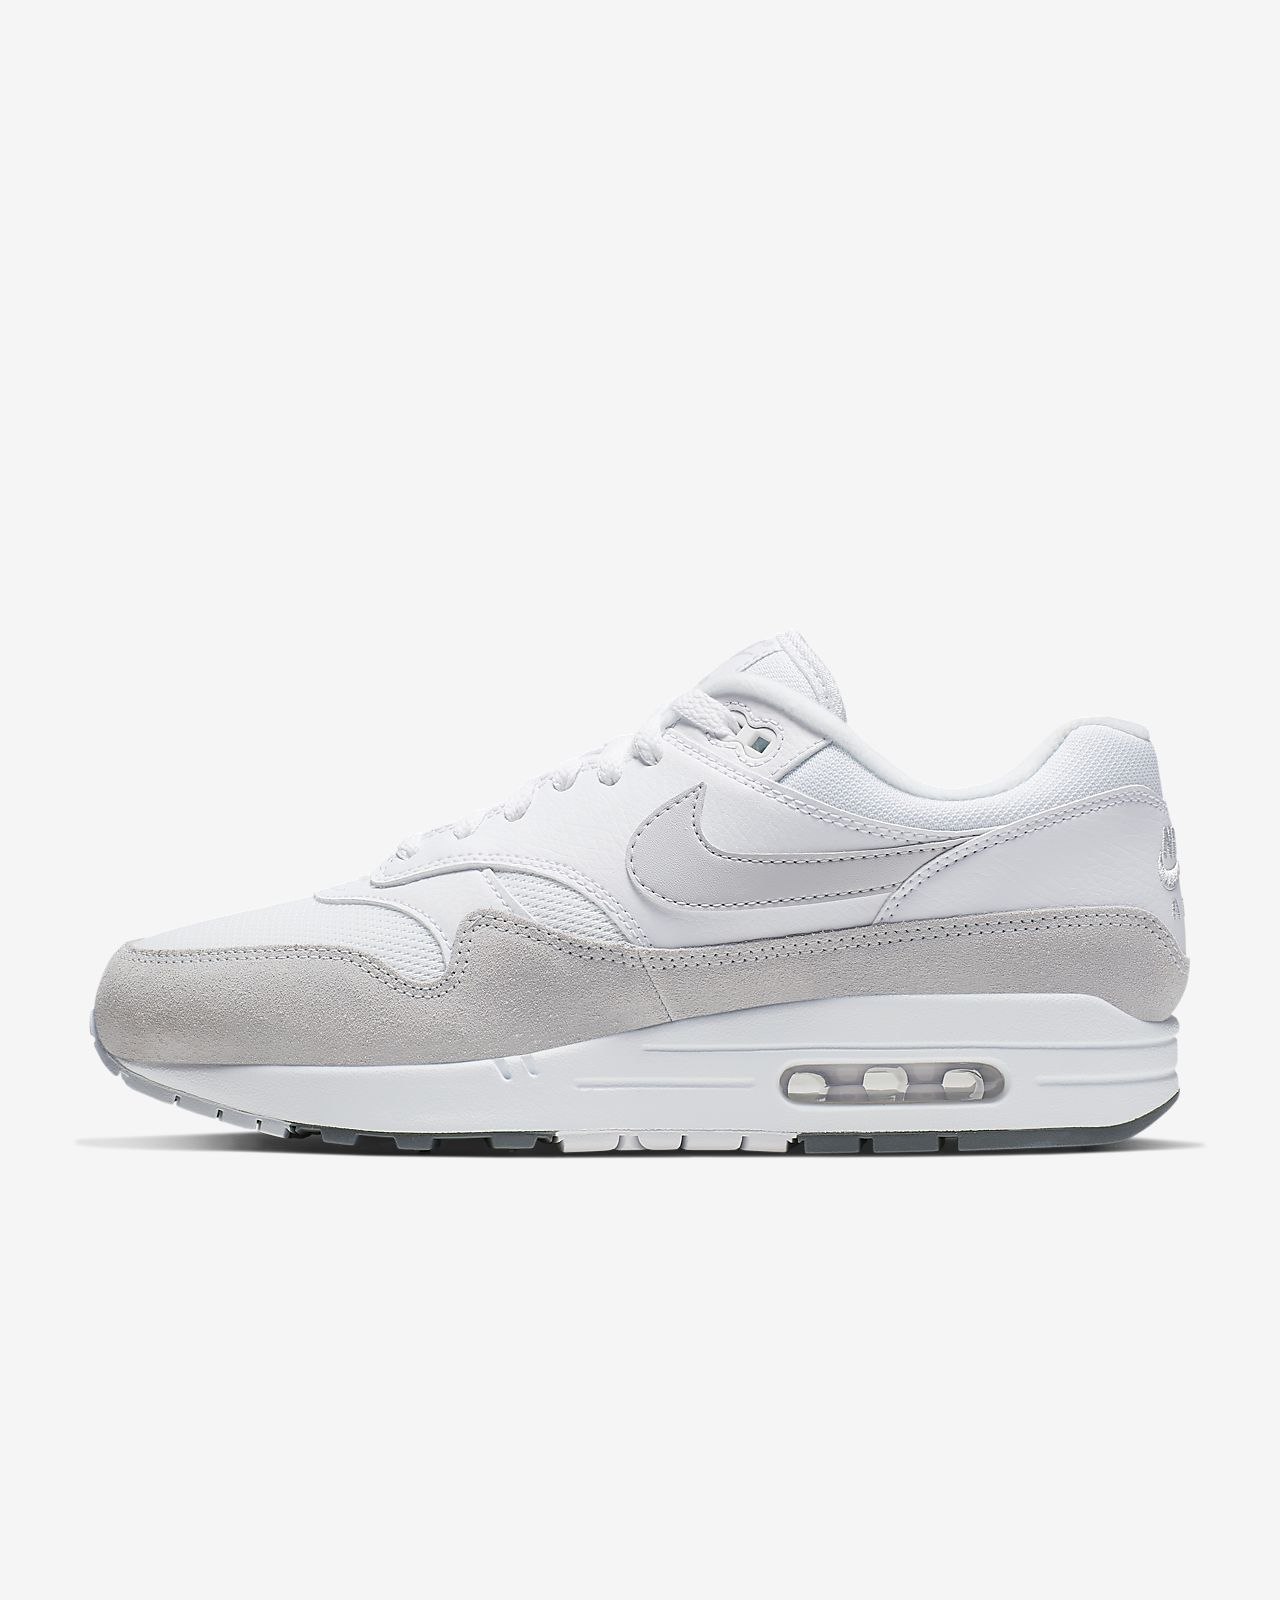 1eca9a1d8638a1 Nike Air Max 1 Men s Shoe. Nike.com